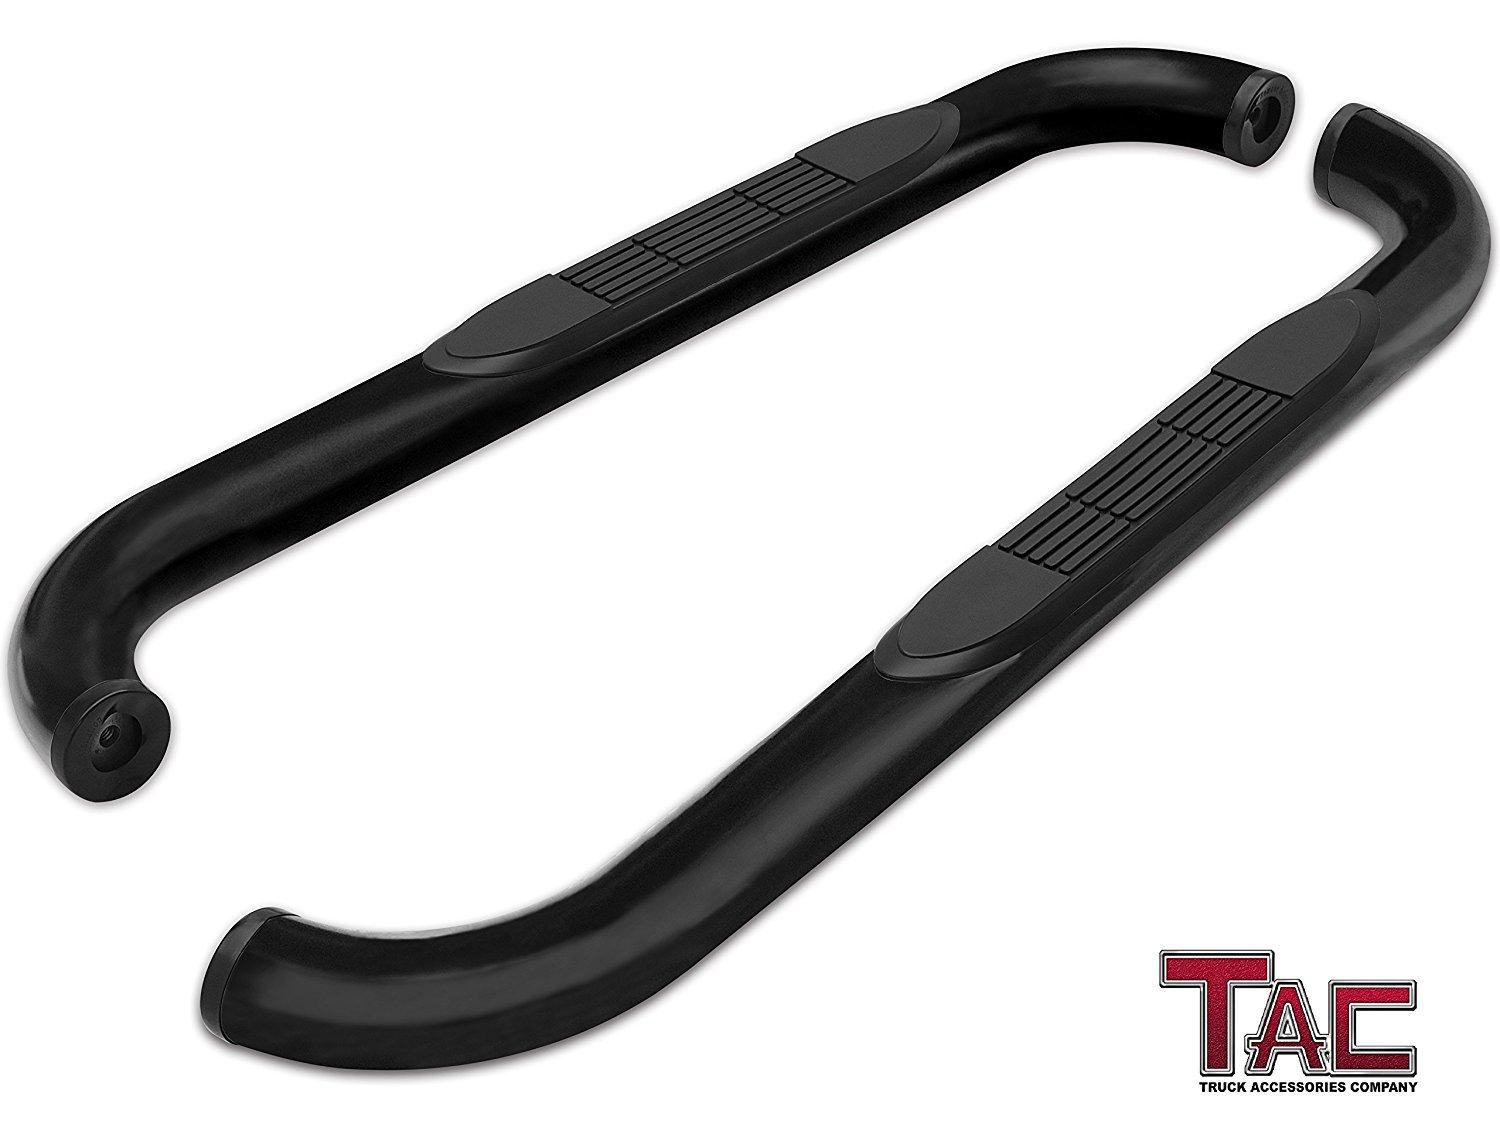 TAC Side Steps for 1988-1998 Chevy C/K Regular Cab / GMC C/K Regular Cab Pickup Truck 3' Black Side Bars Nerf Bars Running Boards Rock Panel Off Road Exterior Accessories (2 Pieces Running Boards)